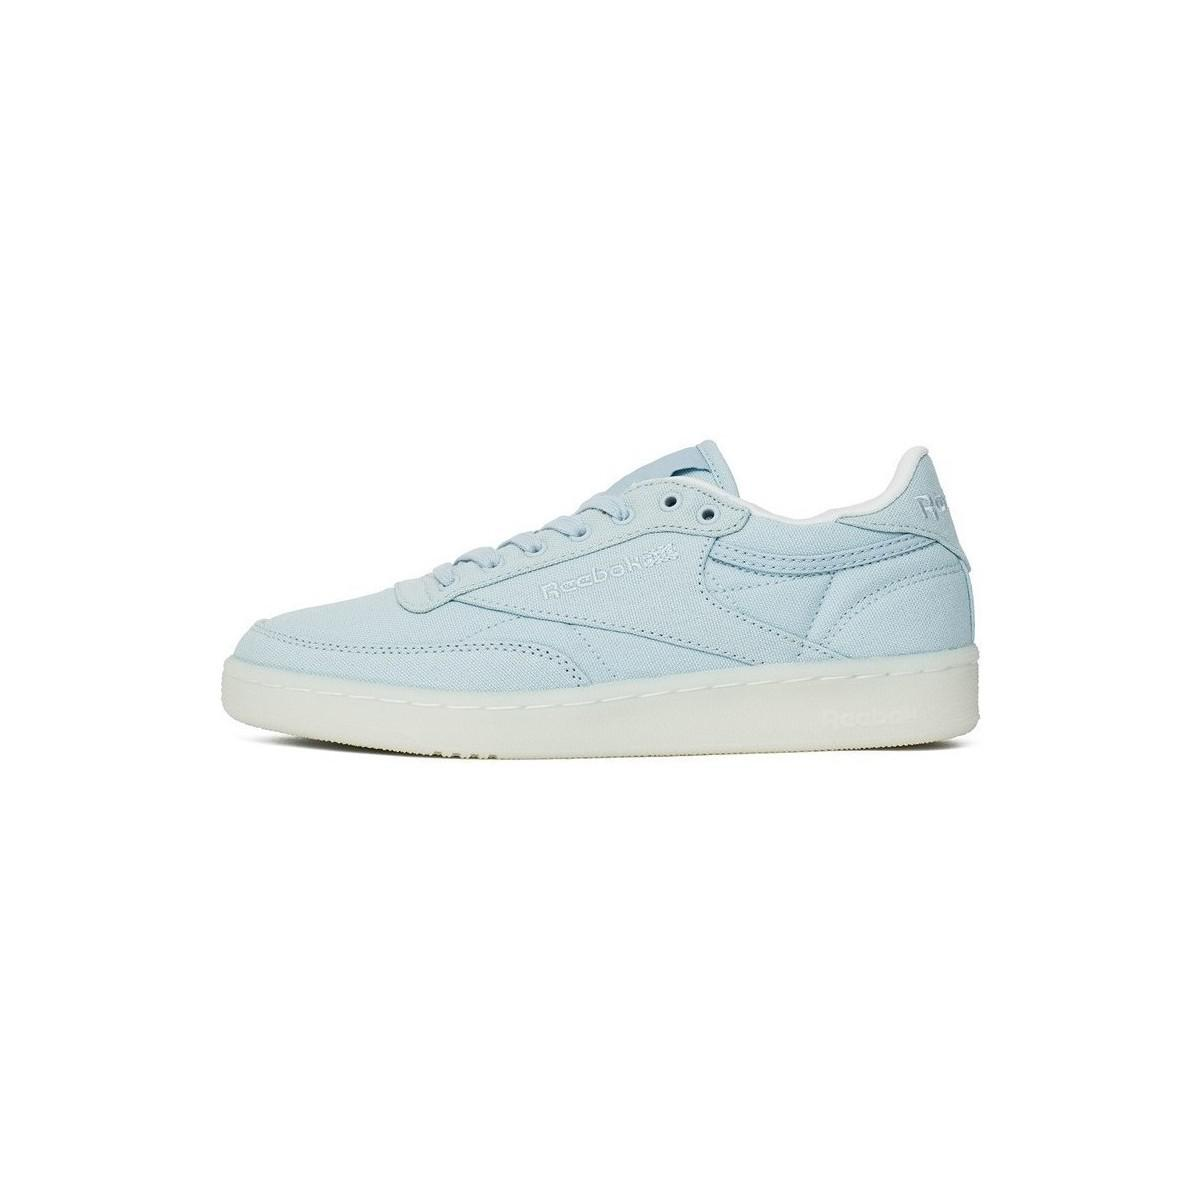 Reebok - Club C 85 Canvas Zee Blue Women s Shoes (trainers) In Multicolour  -. View fullscreen 8202dcd38